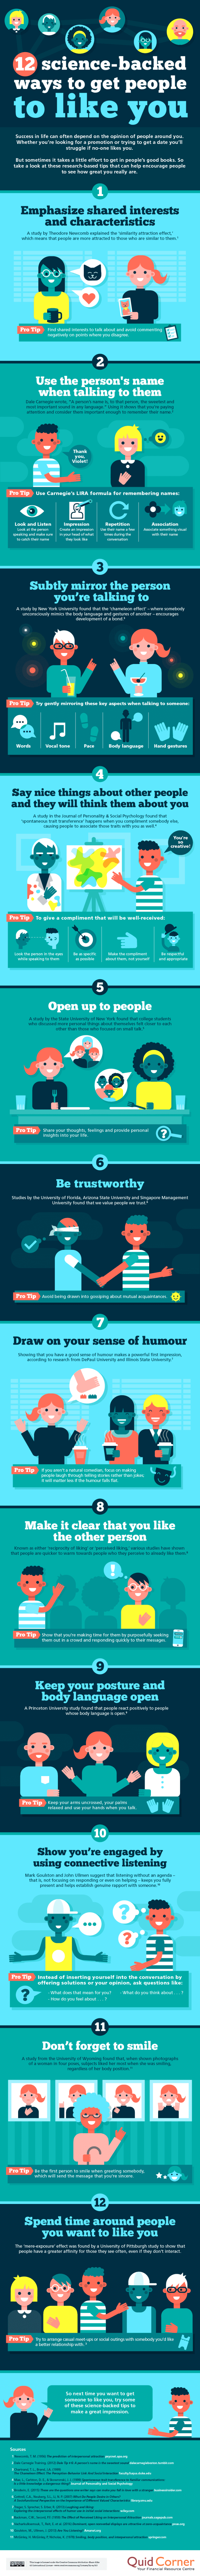 12 science backed ways to get people to like you infographic